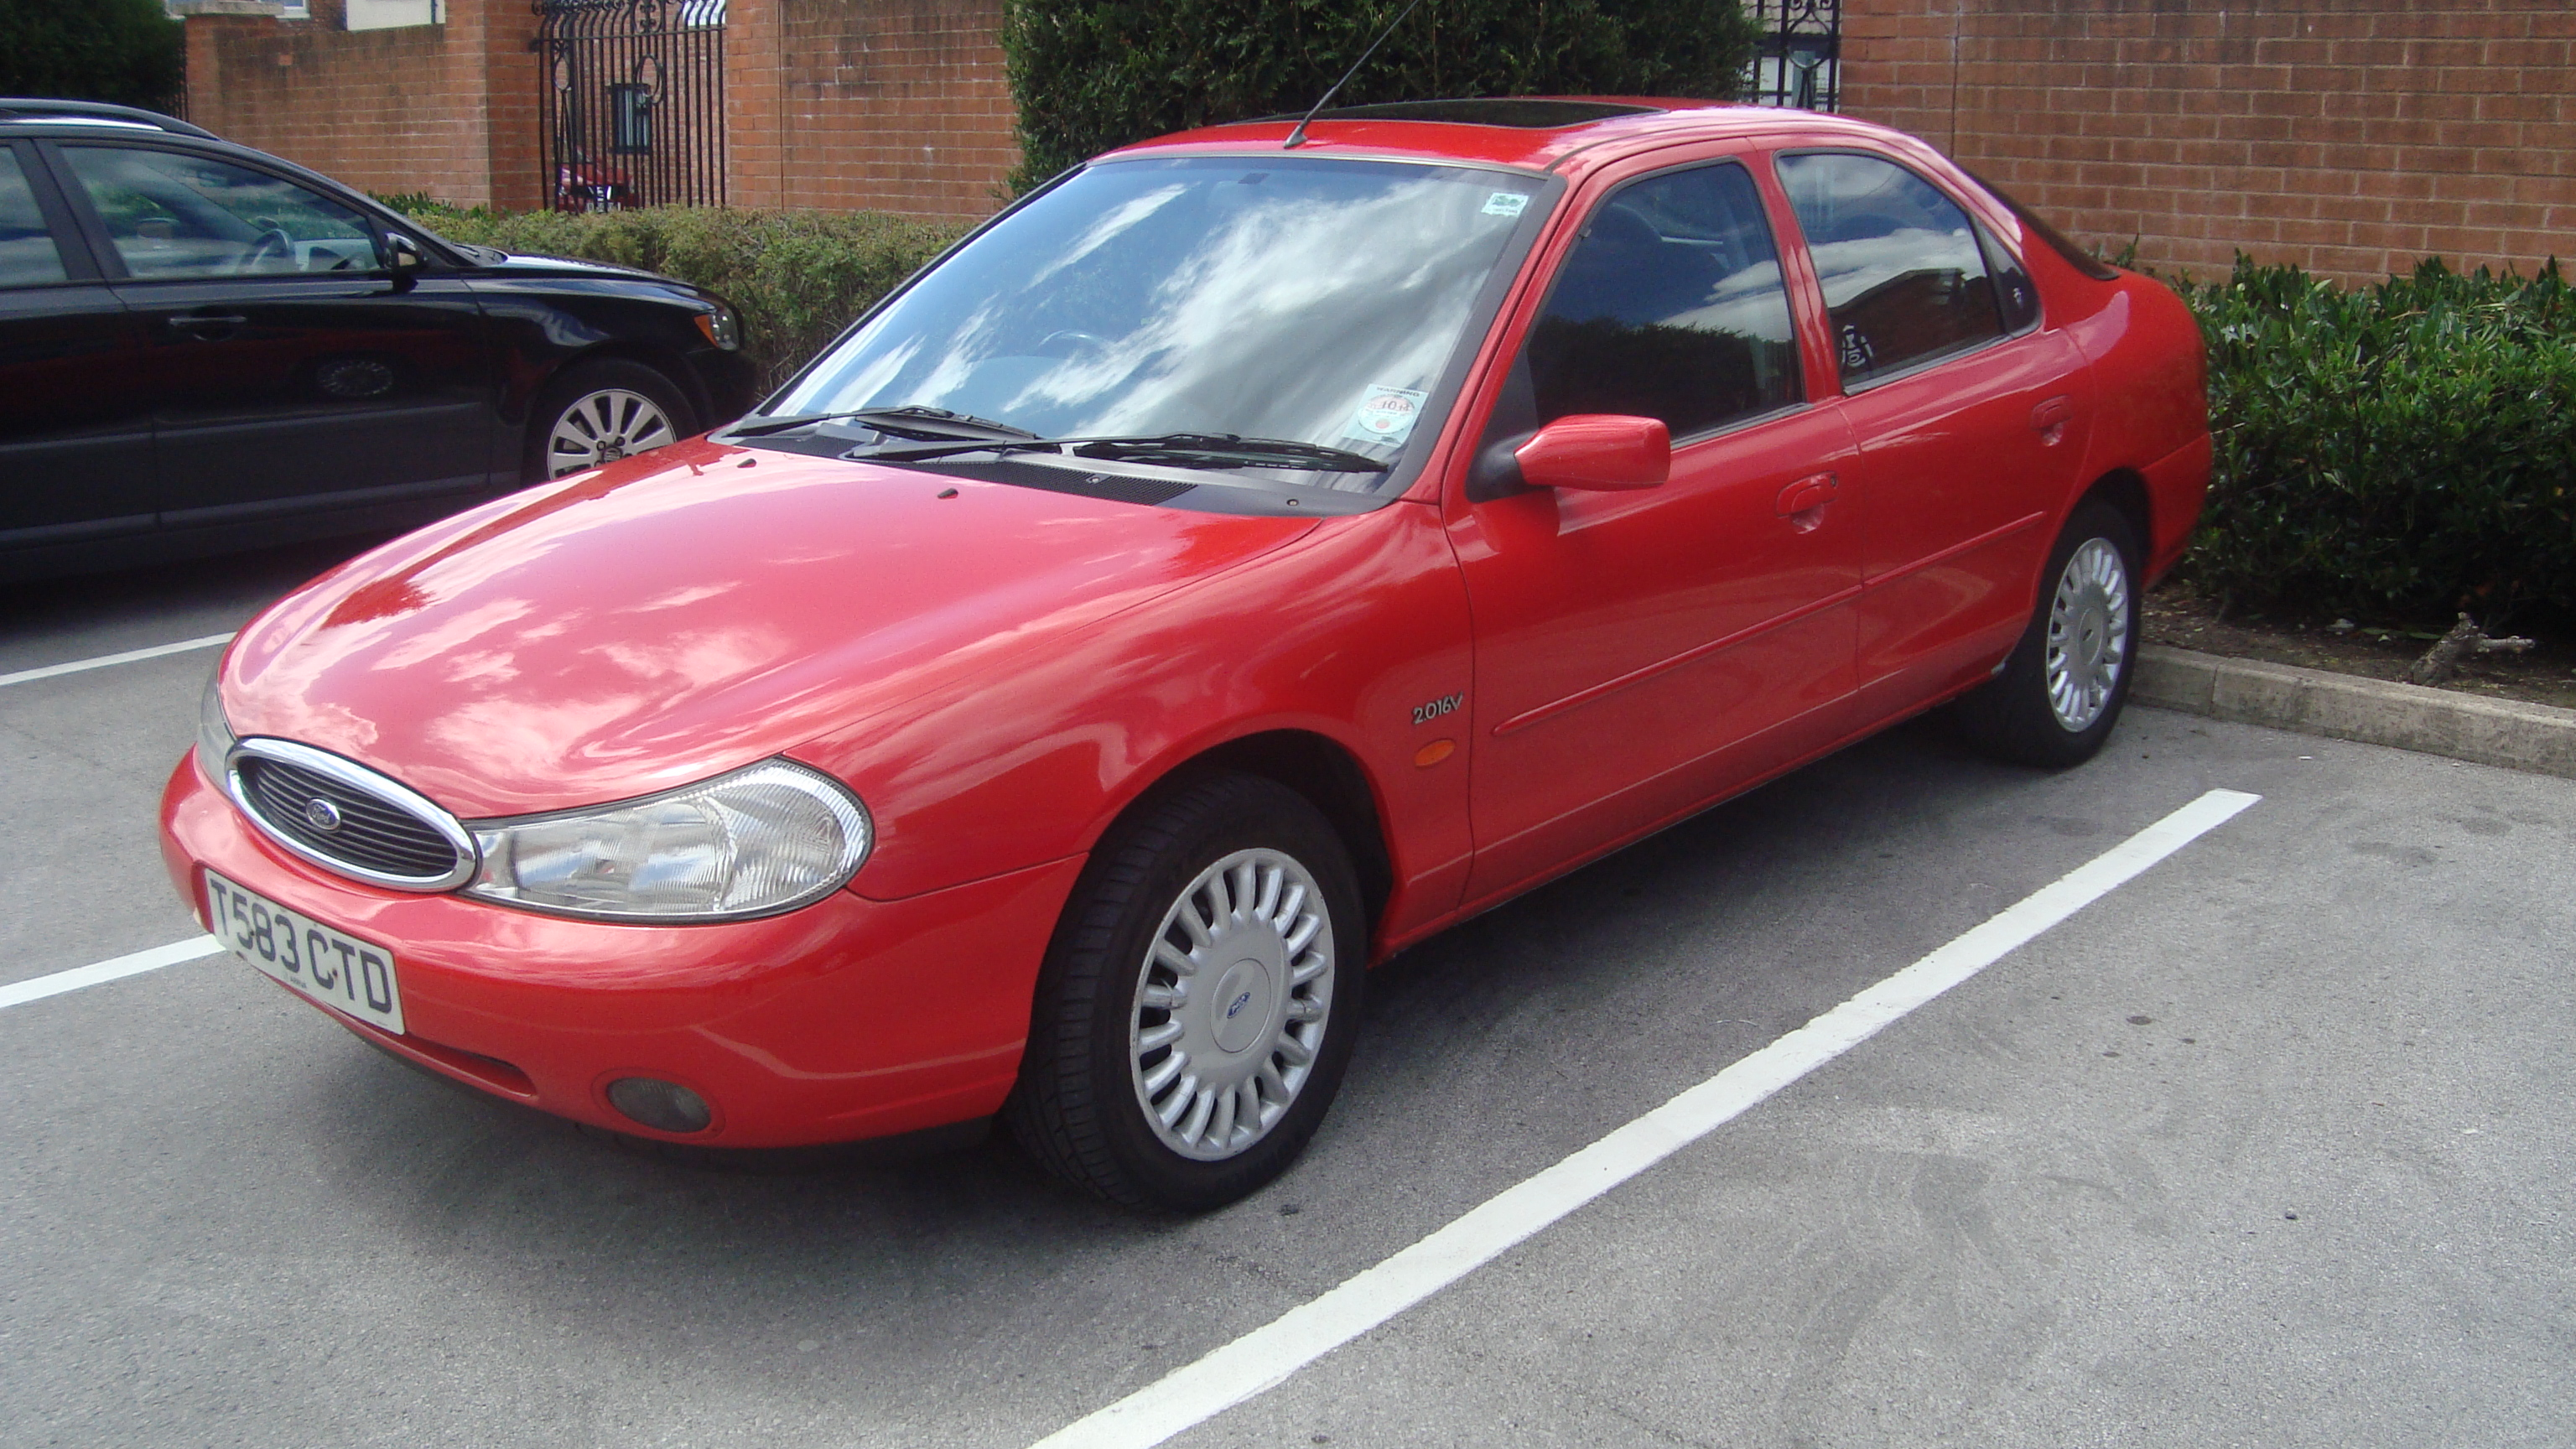 File:1999 Ford Mondeo 2.0 Ghia Automatic (14579207445).jpg